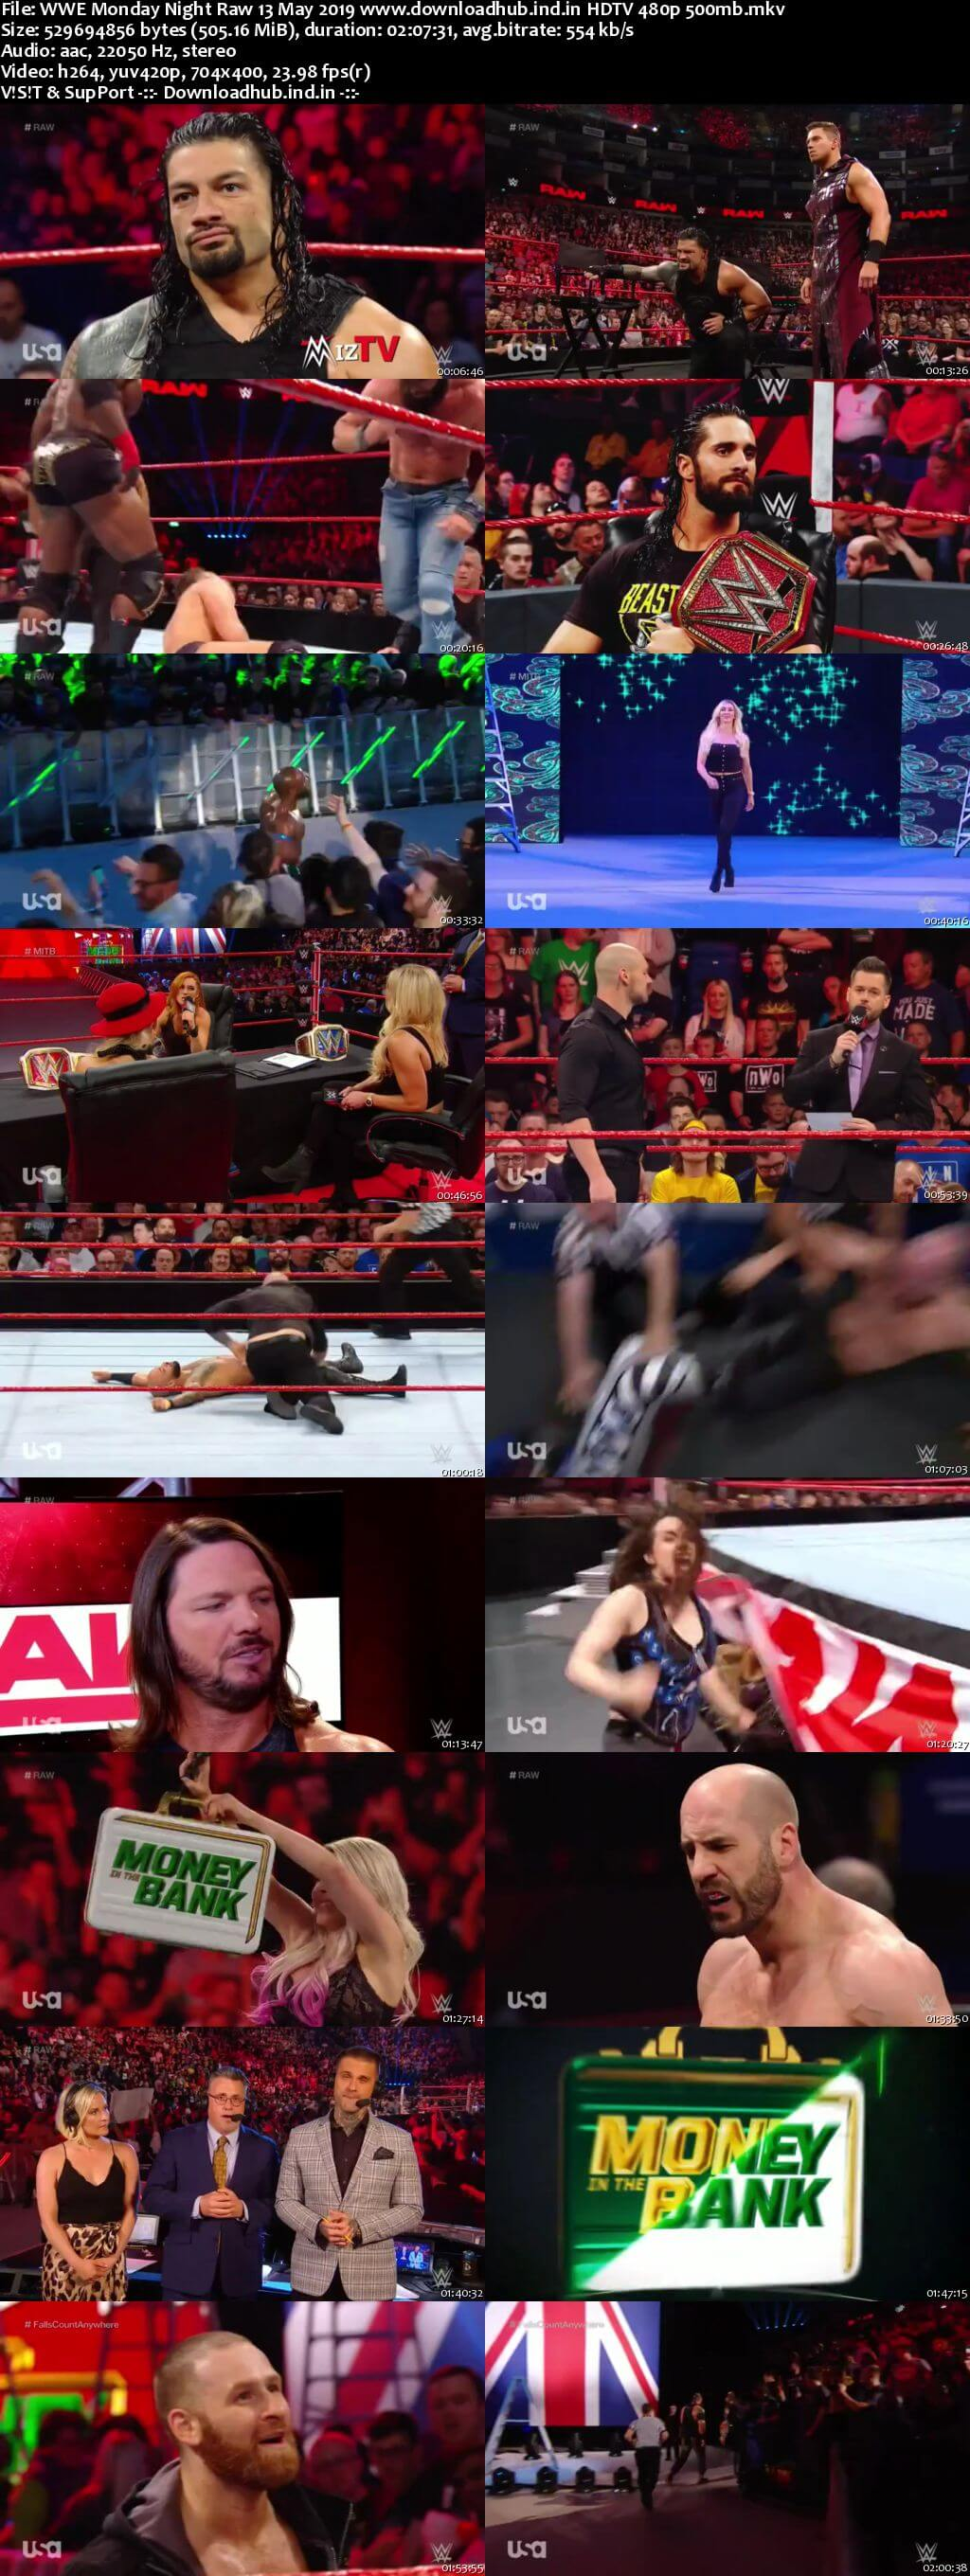 WWE Monday Night Raw 13th May 2019 500MB HDTVRip 480p